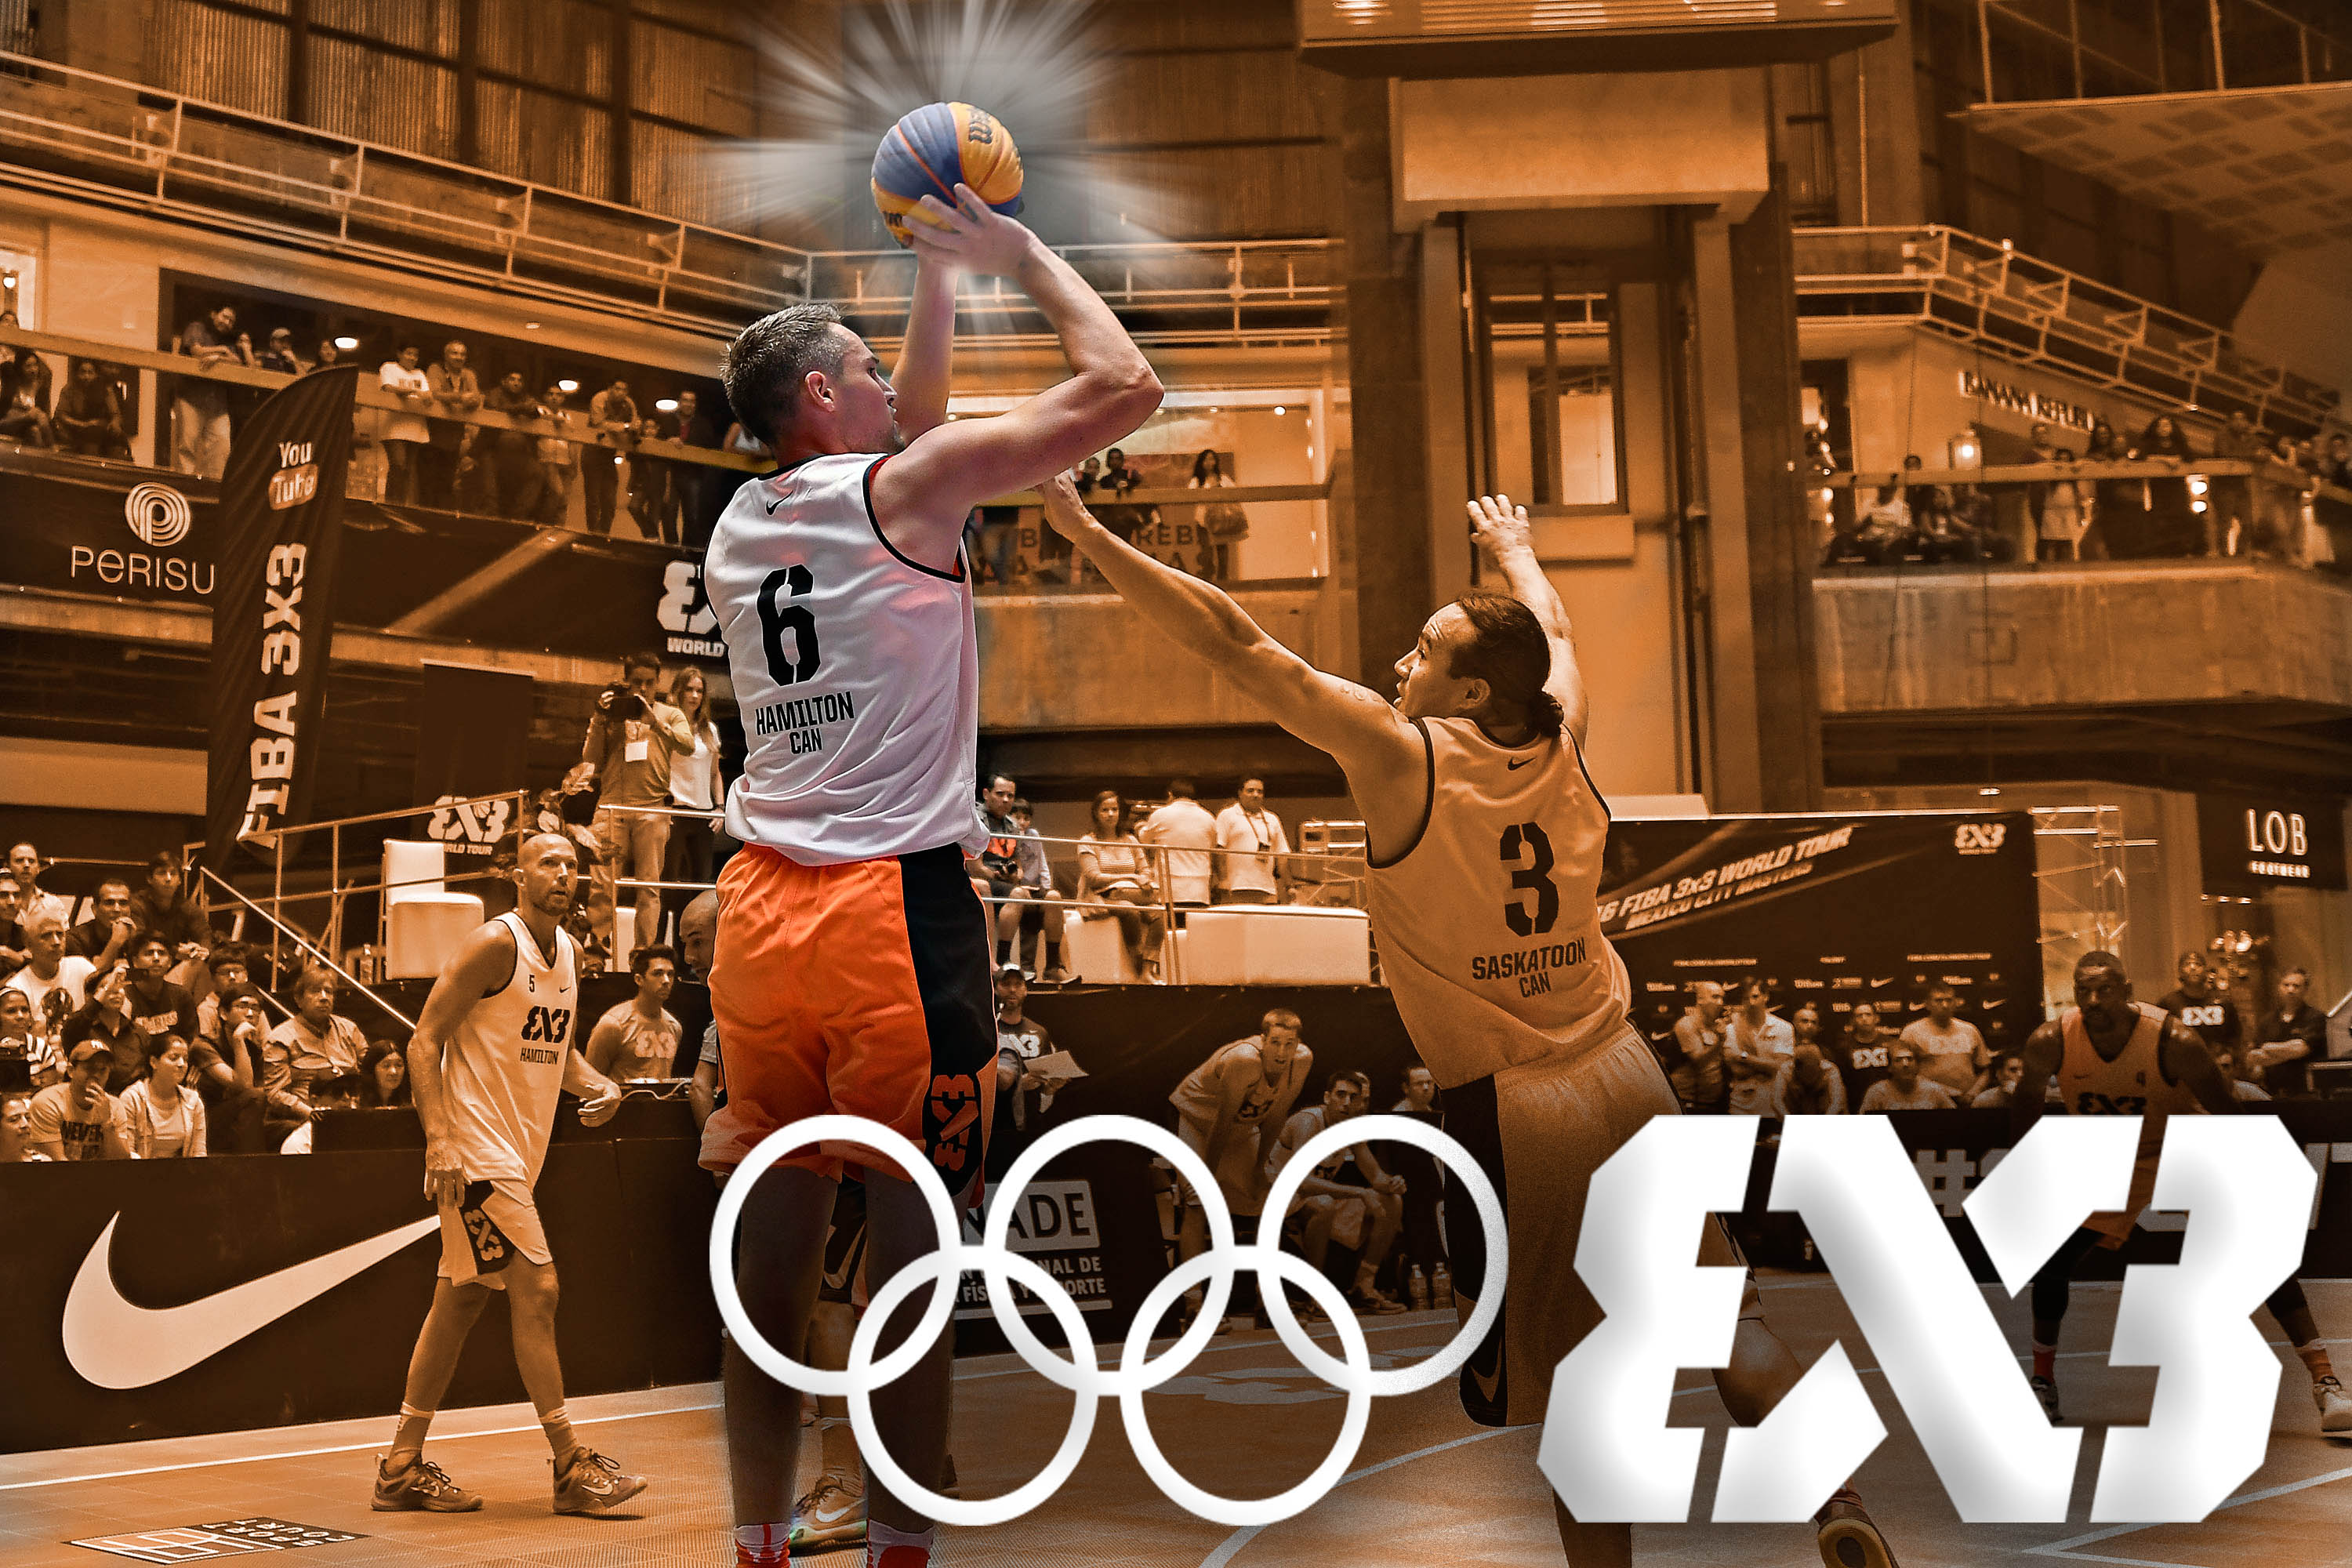 3x3 basketball added to 2020 Olympics